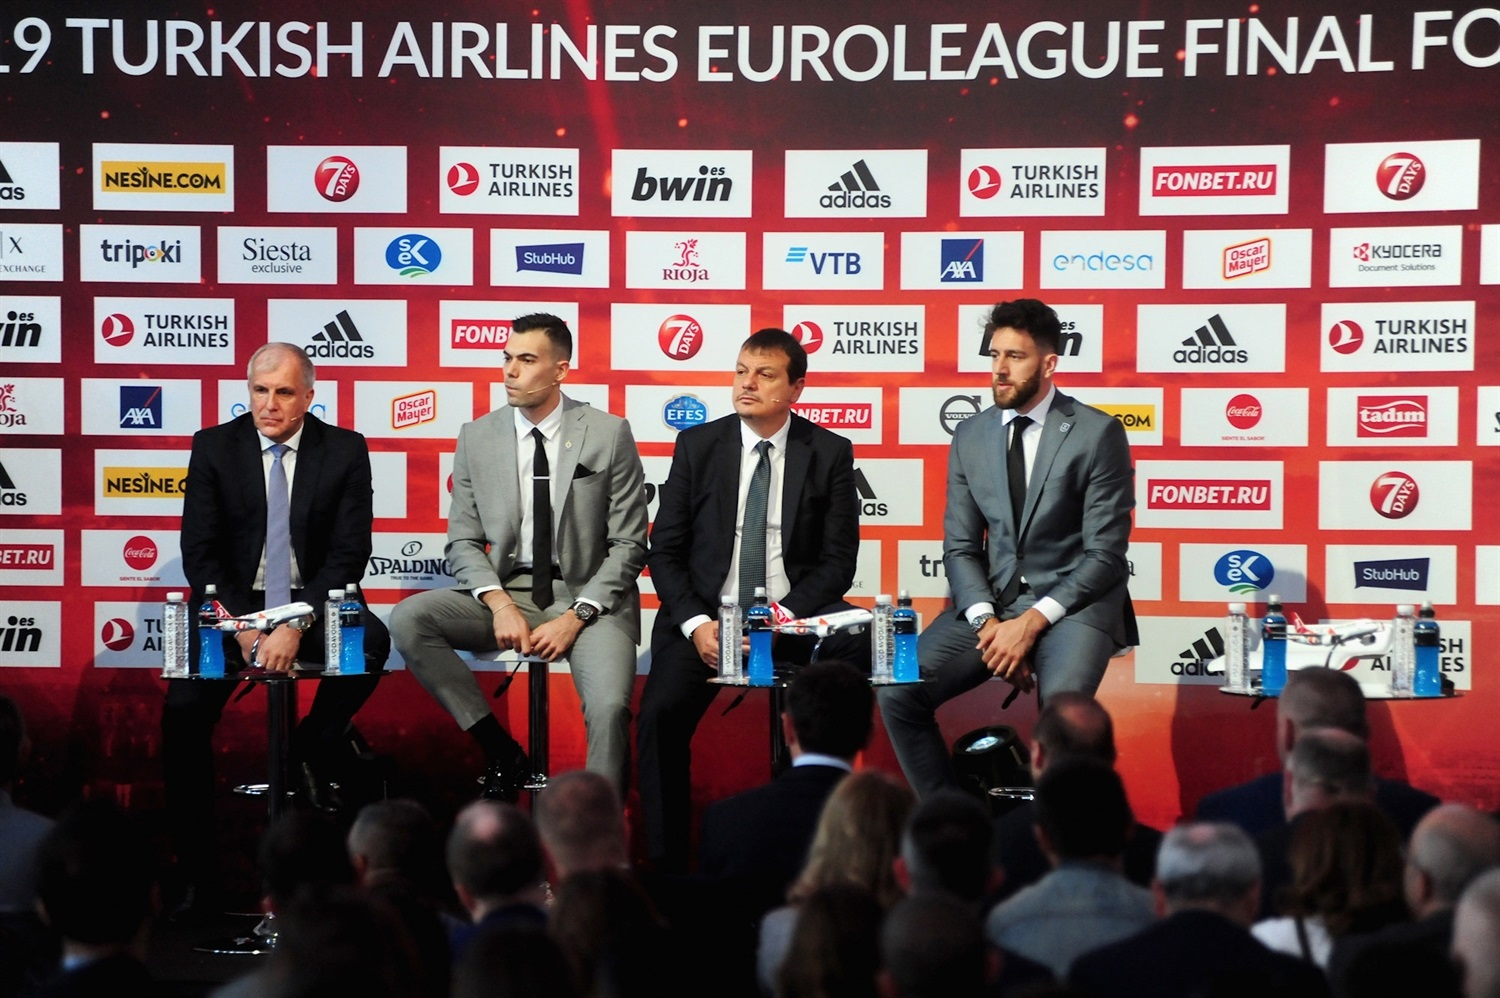 Fenerbahce vs. Efes - Opening Press Conference - Final Four Vitoria-Gasteiz 2019 - EB18